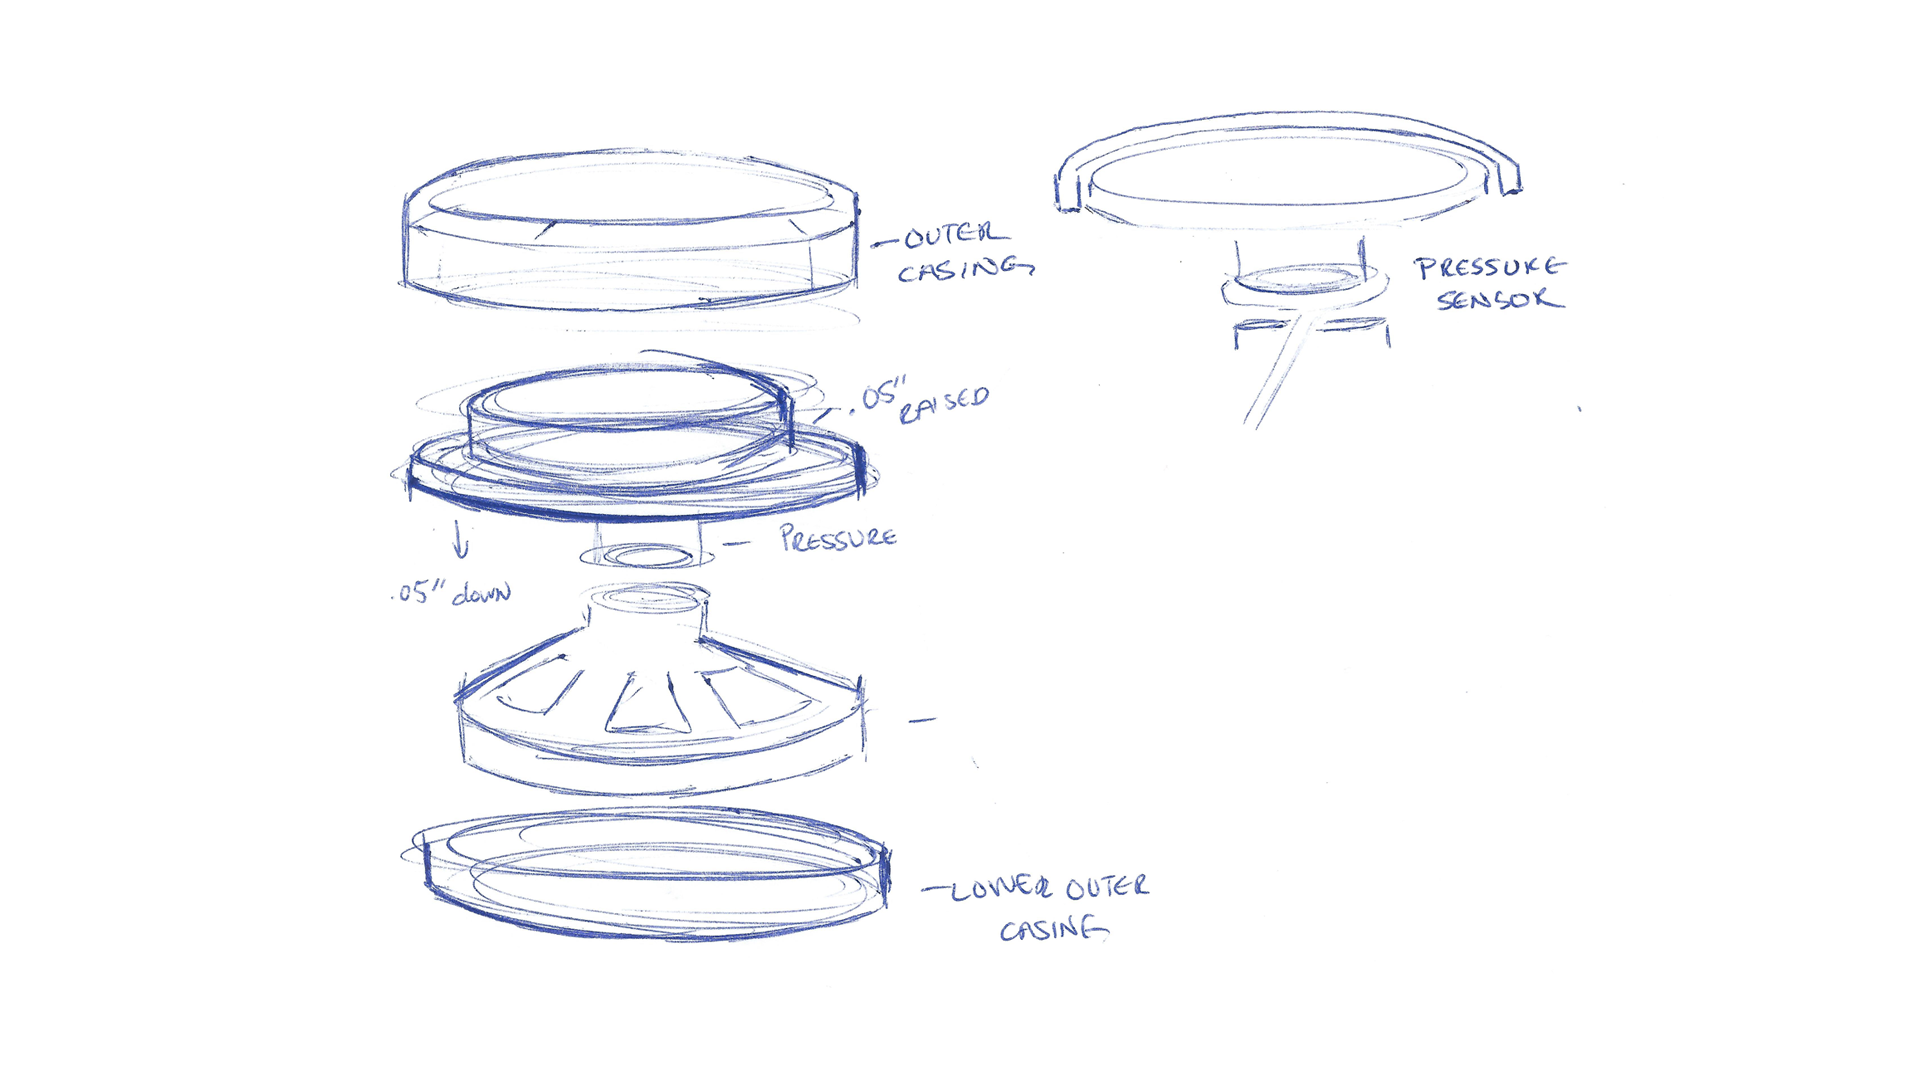 iot_prototypes_sketch